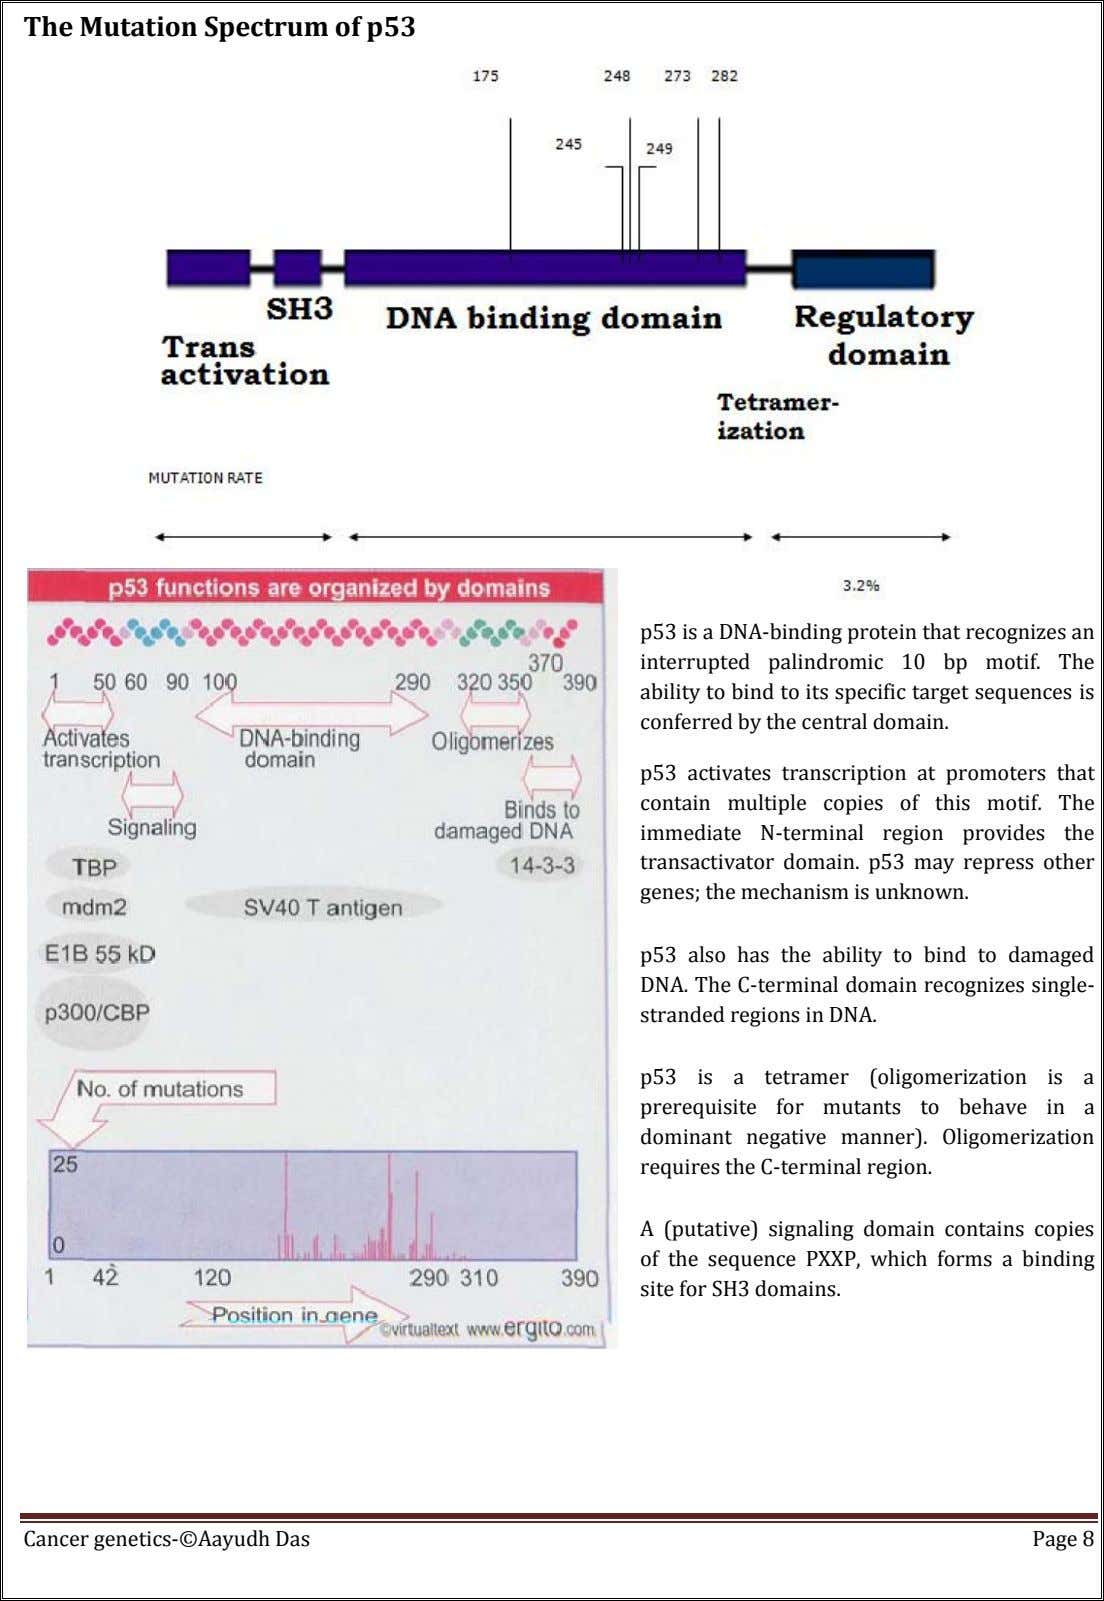 The Mutation Spectrum of p53 p53 is a DNA-binding protein that recognizes an interrupted palindromic 10